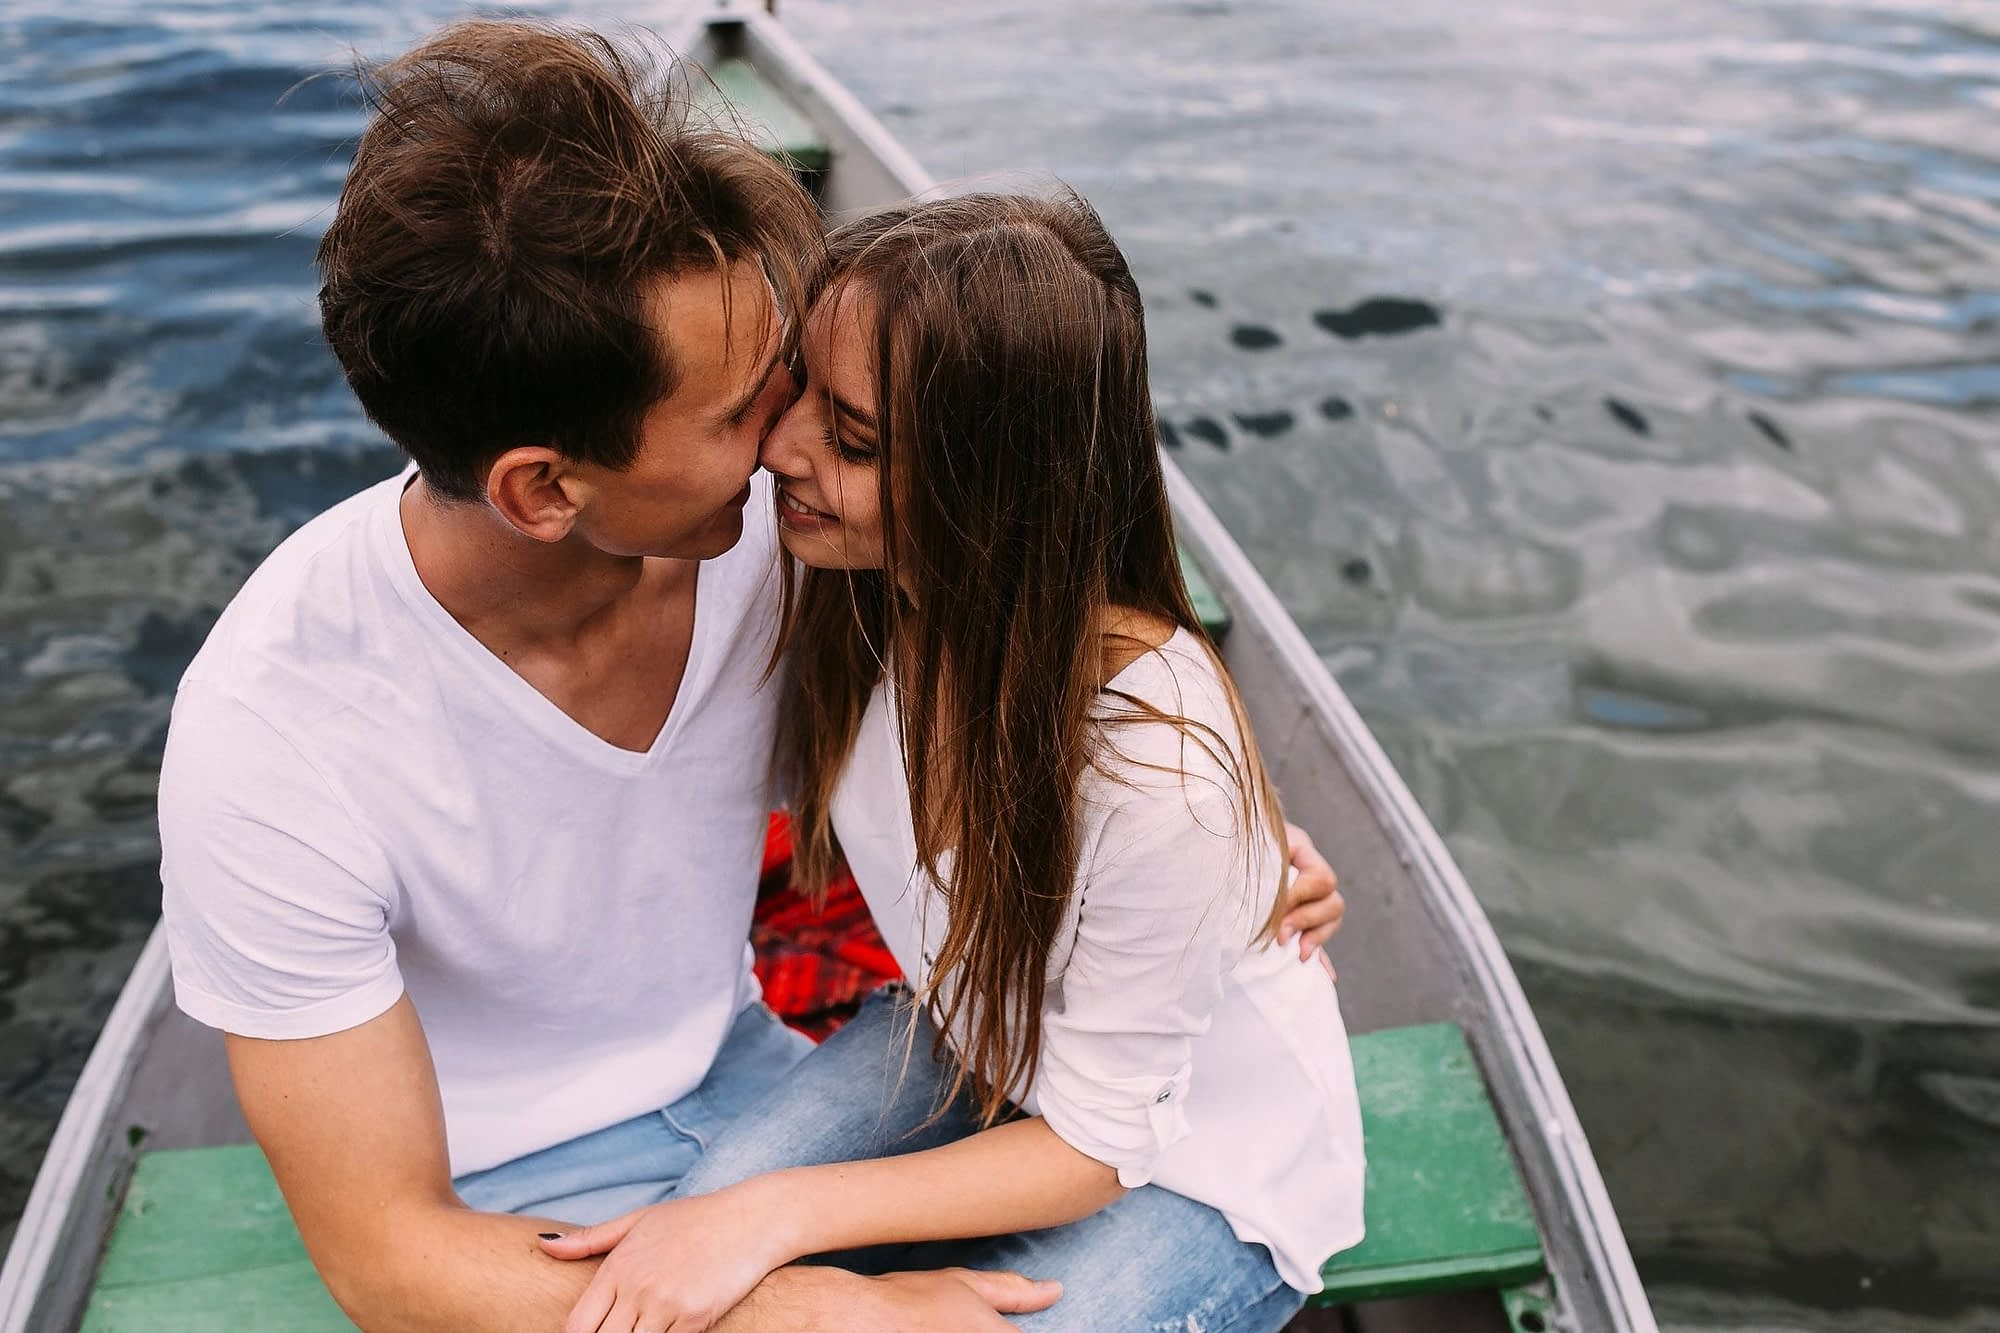 two people in love snuggling face to face in a boat